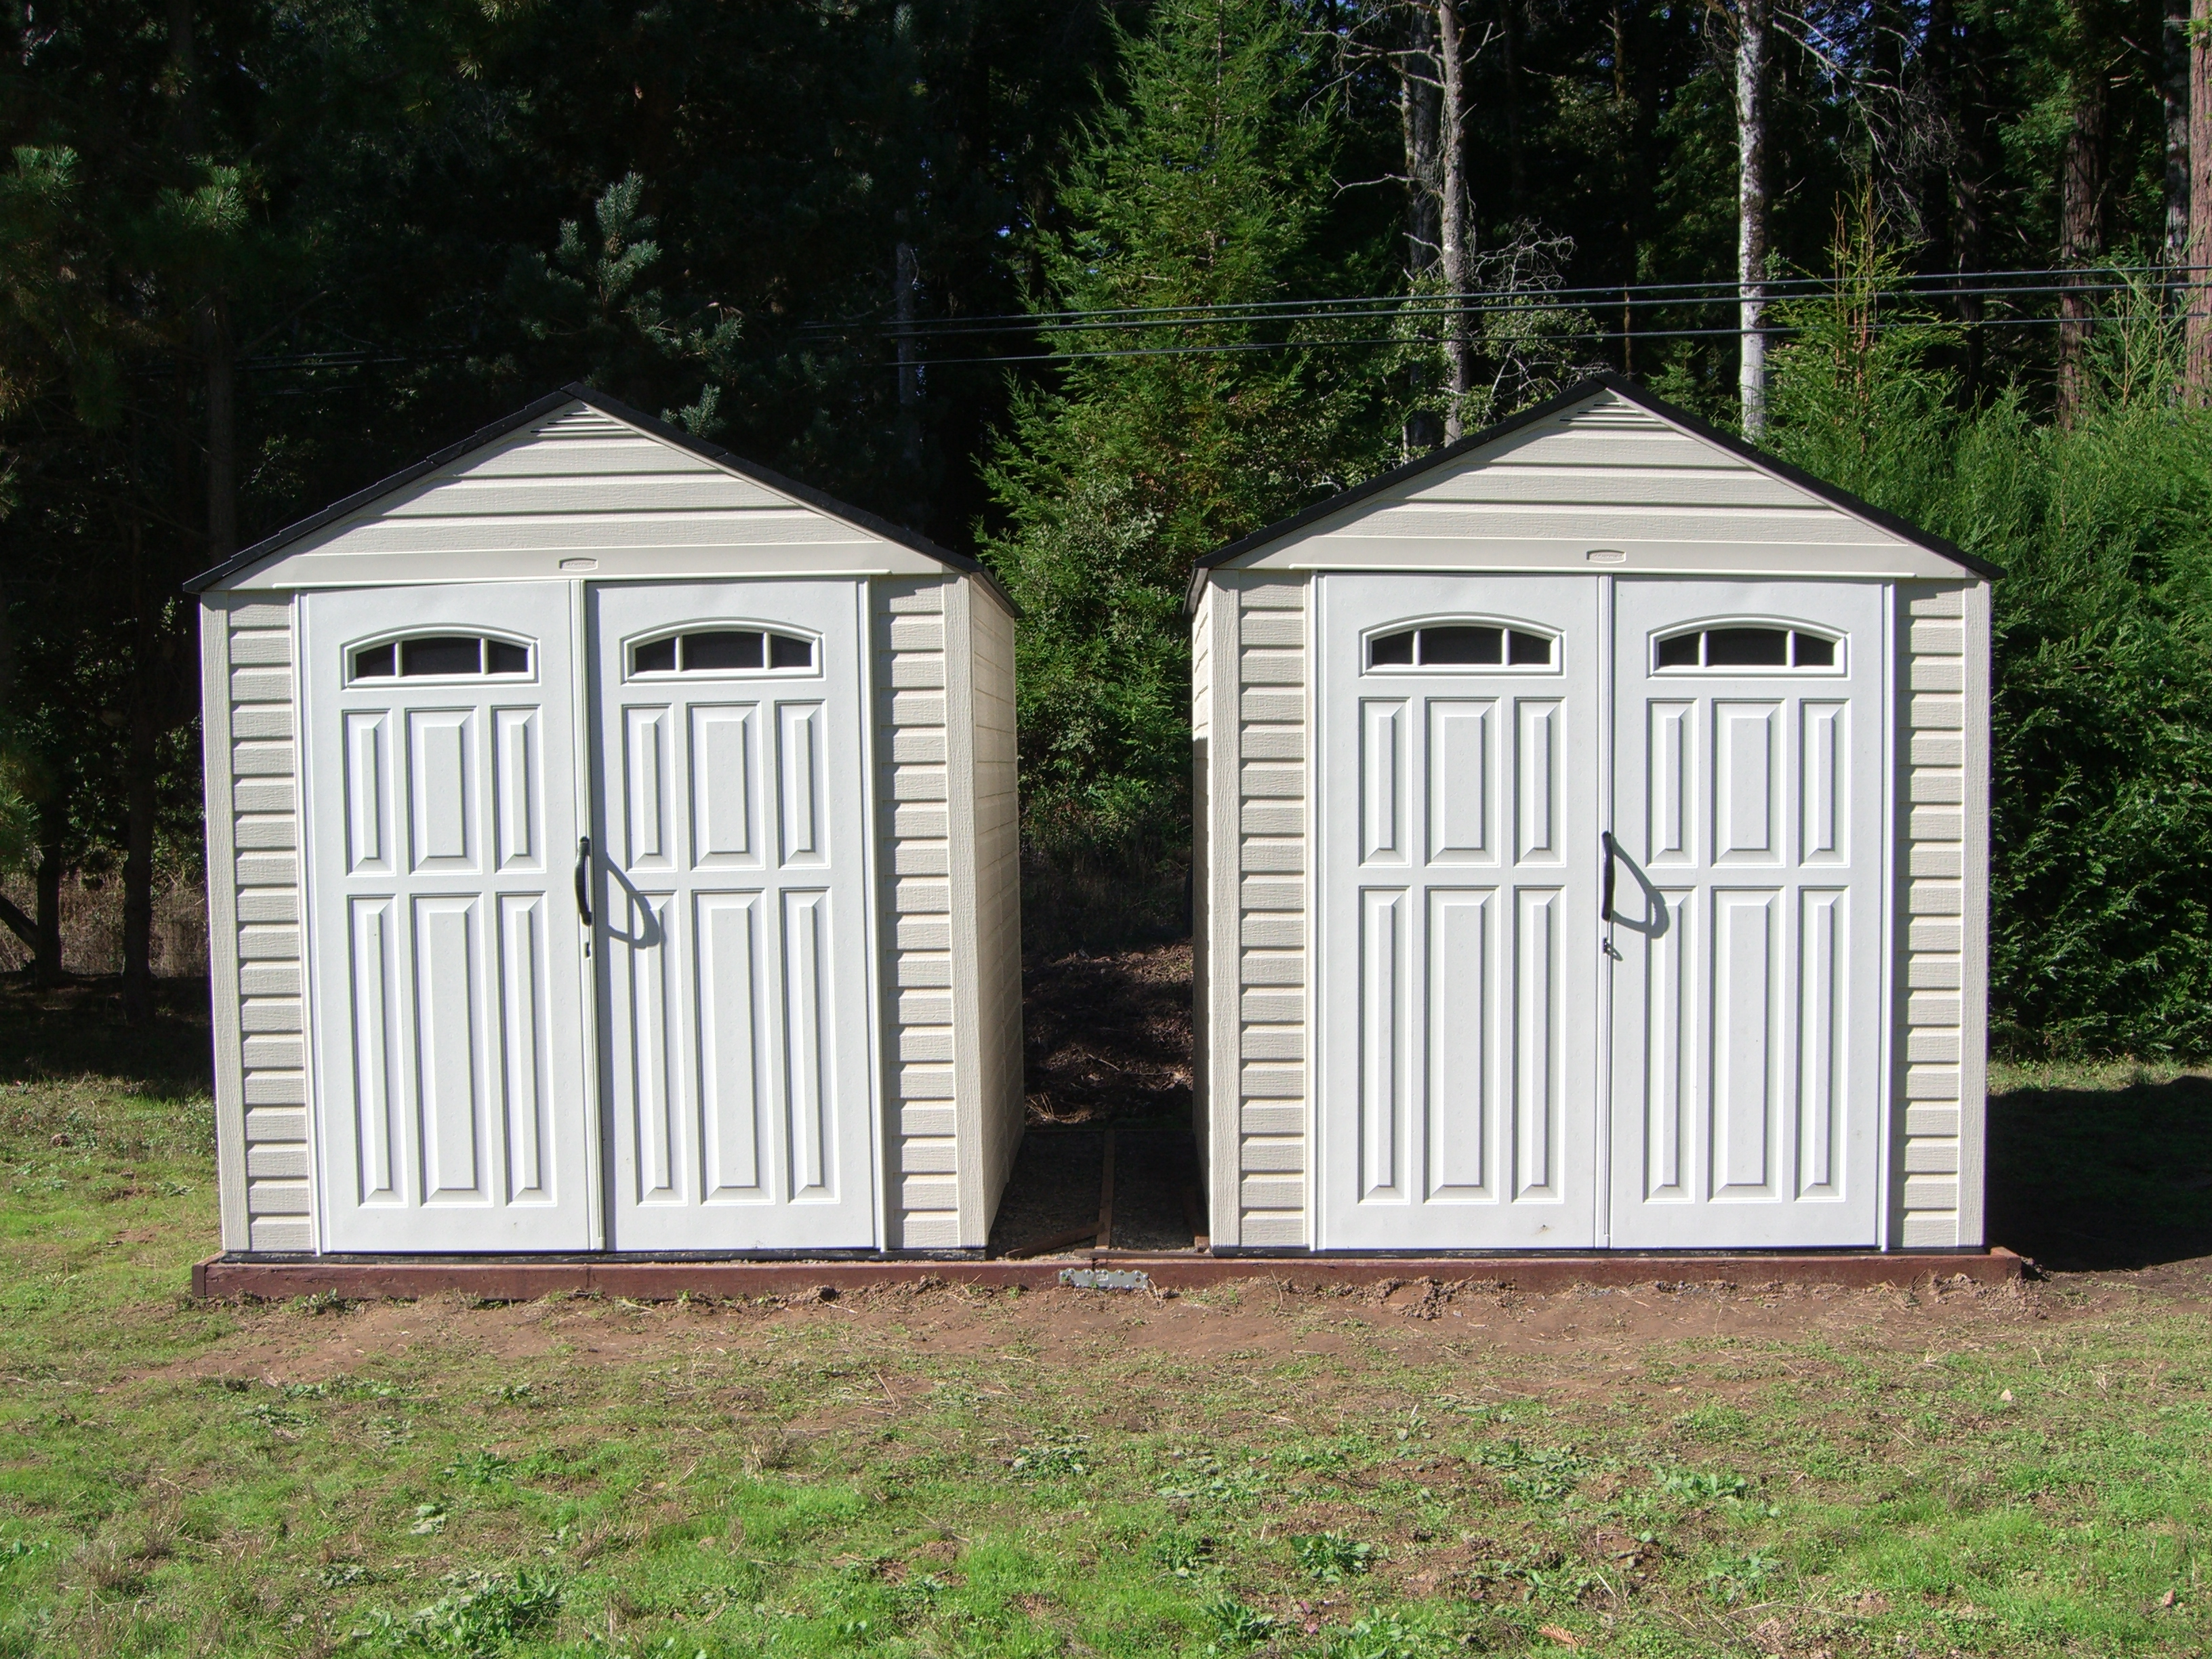 Sheds: Lowes Outdoor Storage | Rubbermaid Storage Sheds | Modern ...